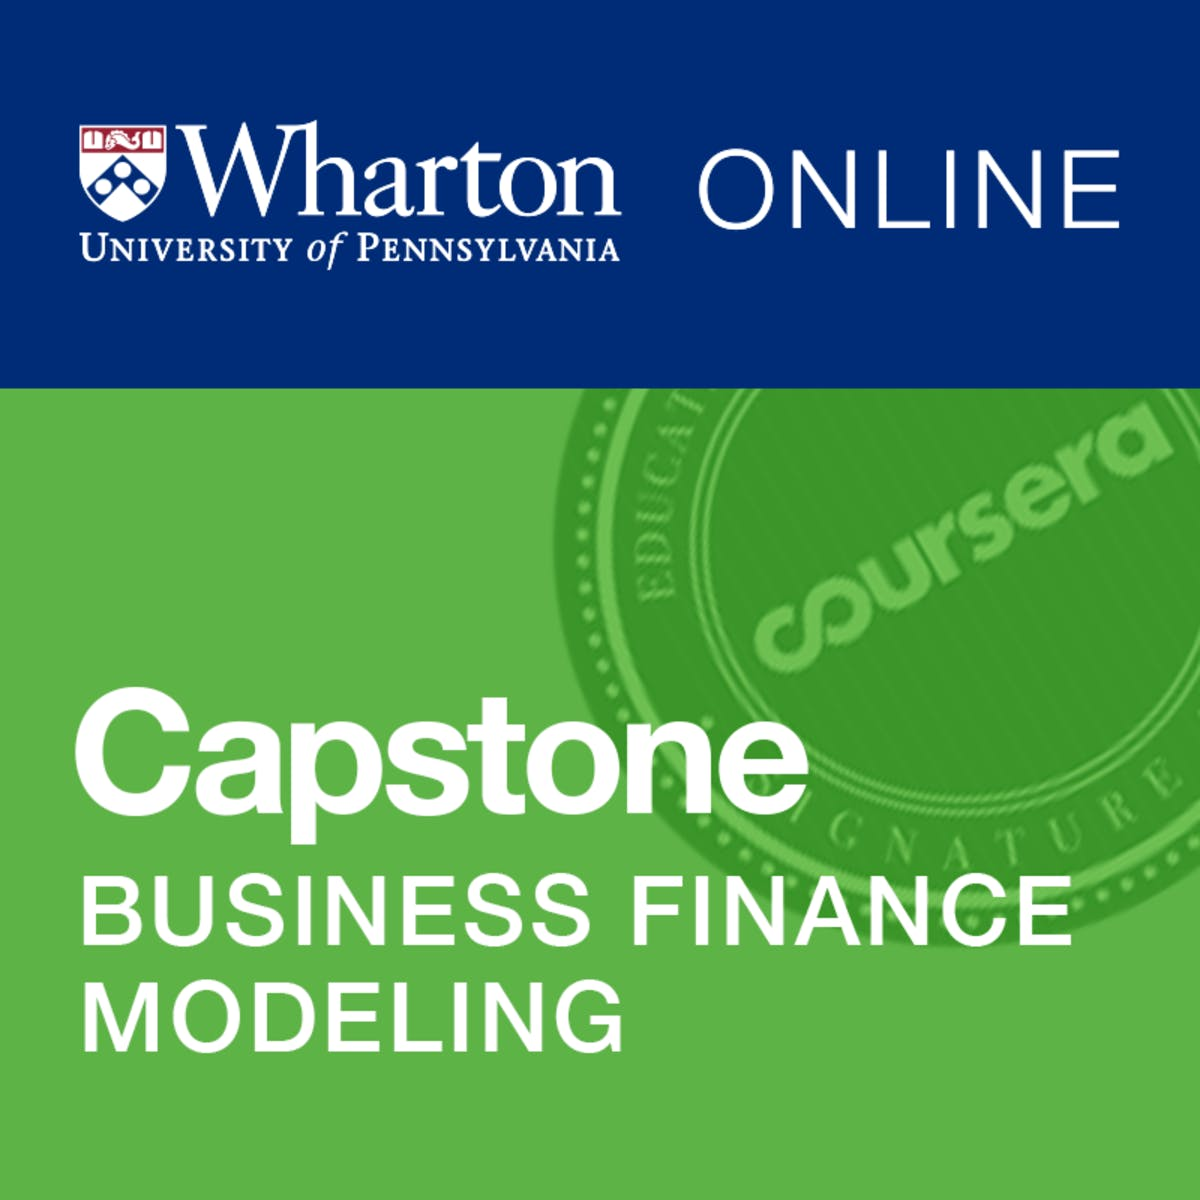 Wharton Business and Financial Modeling Capstone